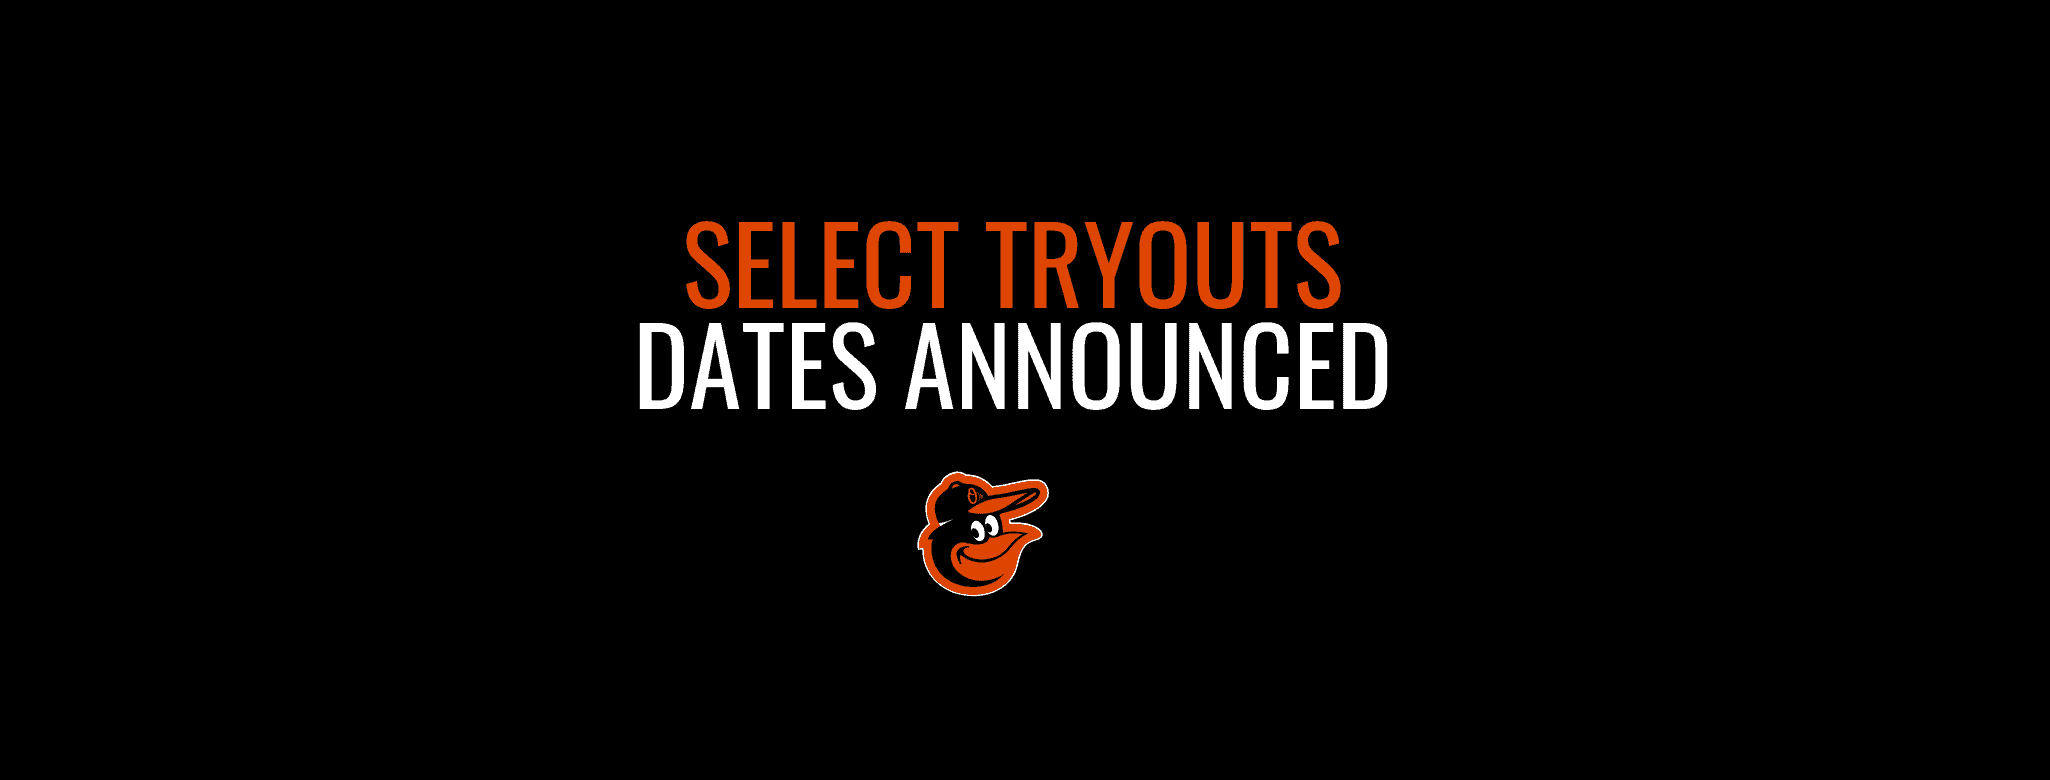 2021 Select coaches announced; tryout dates posted